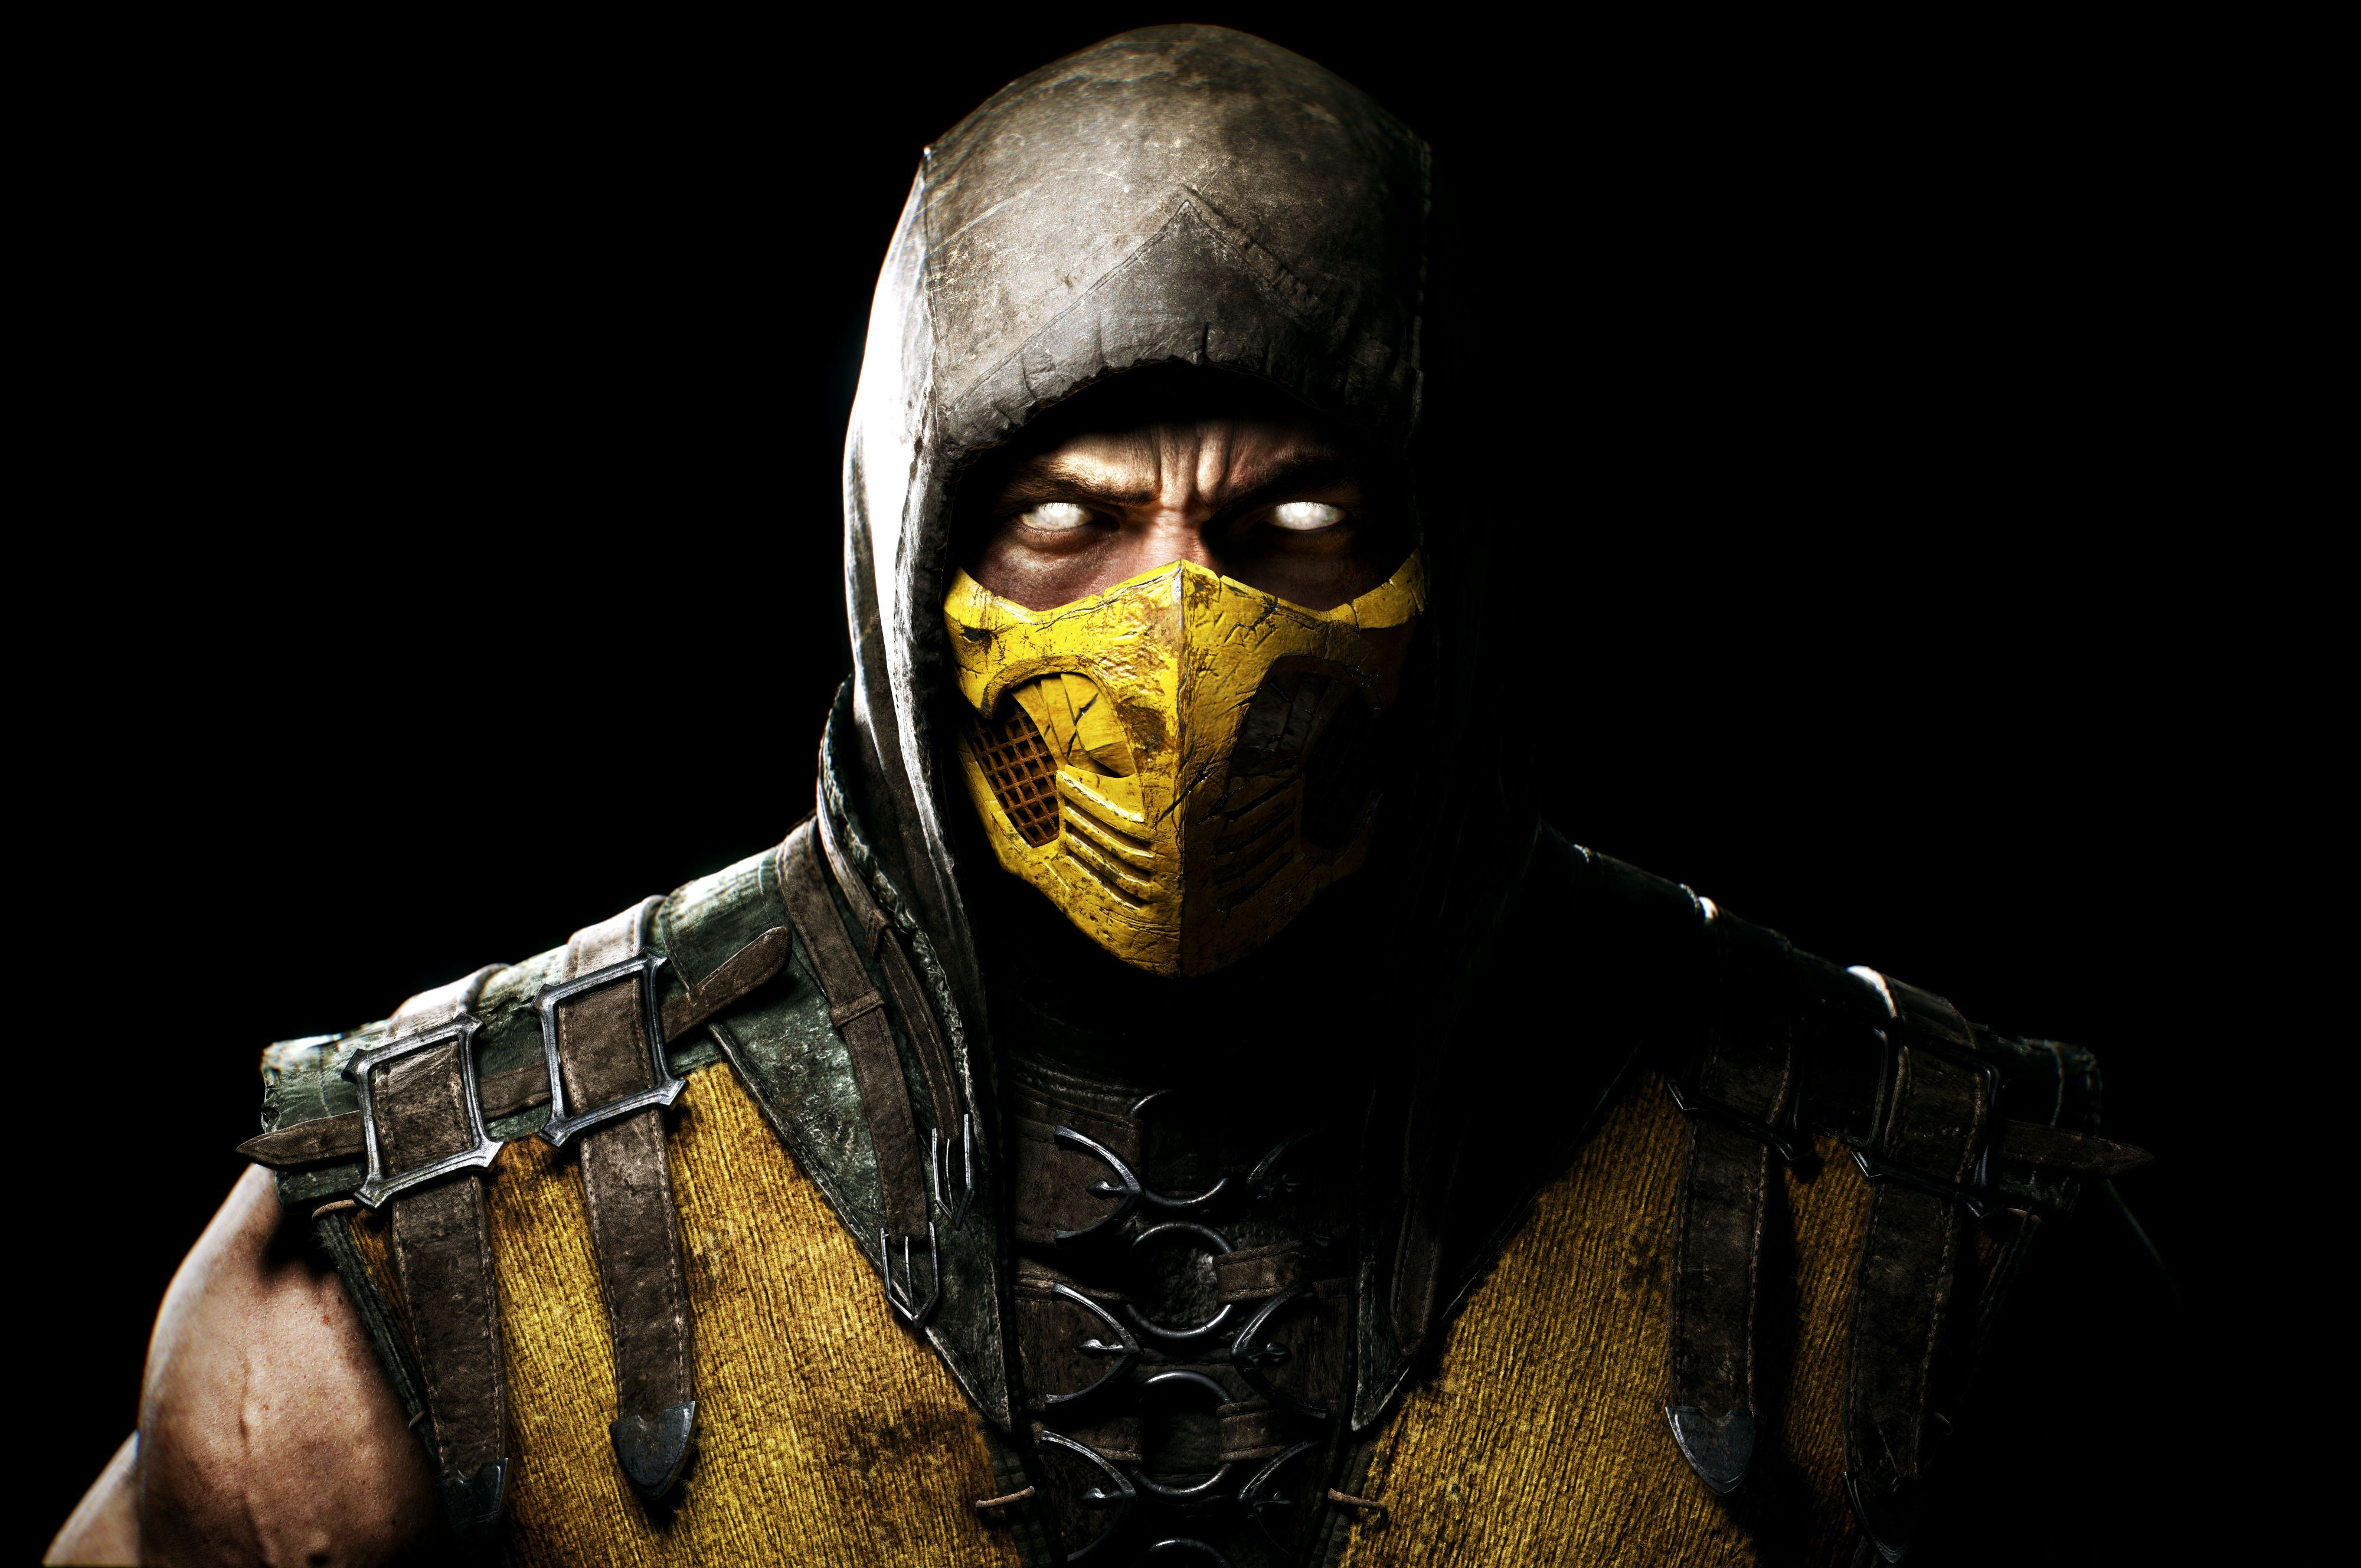 Scorpion Mortal Kombat X Build Finished Rpf Costume And Prop